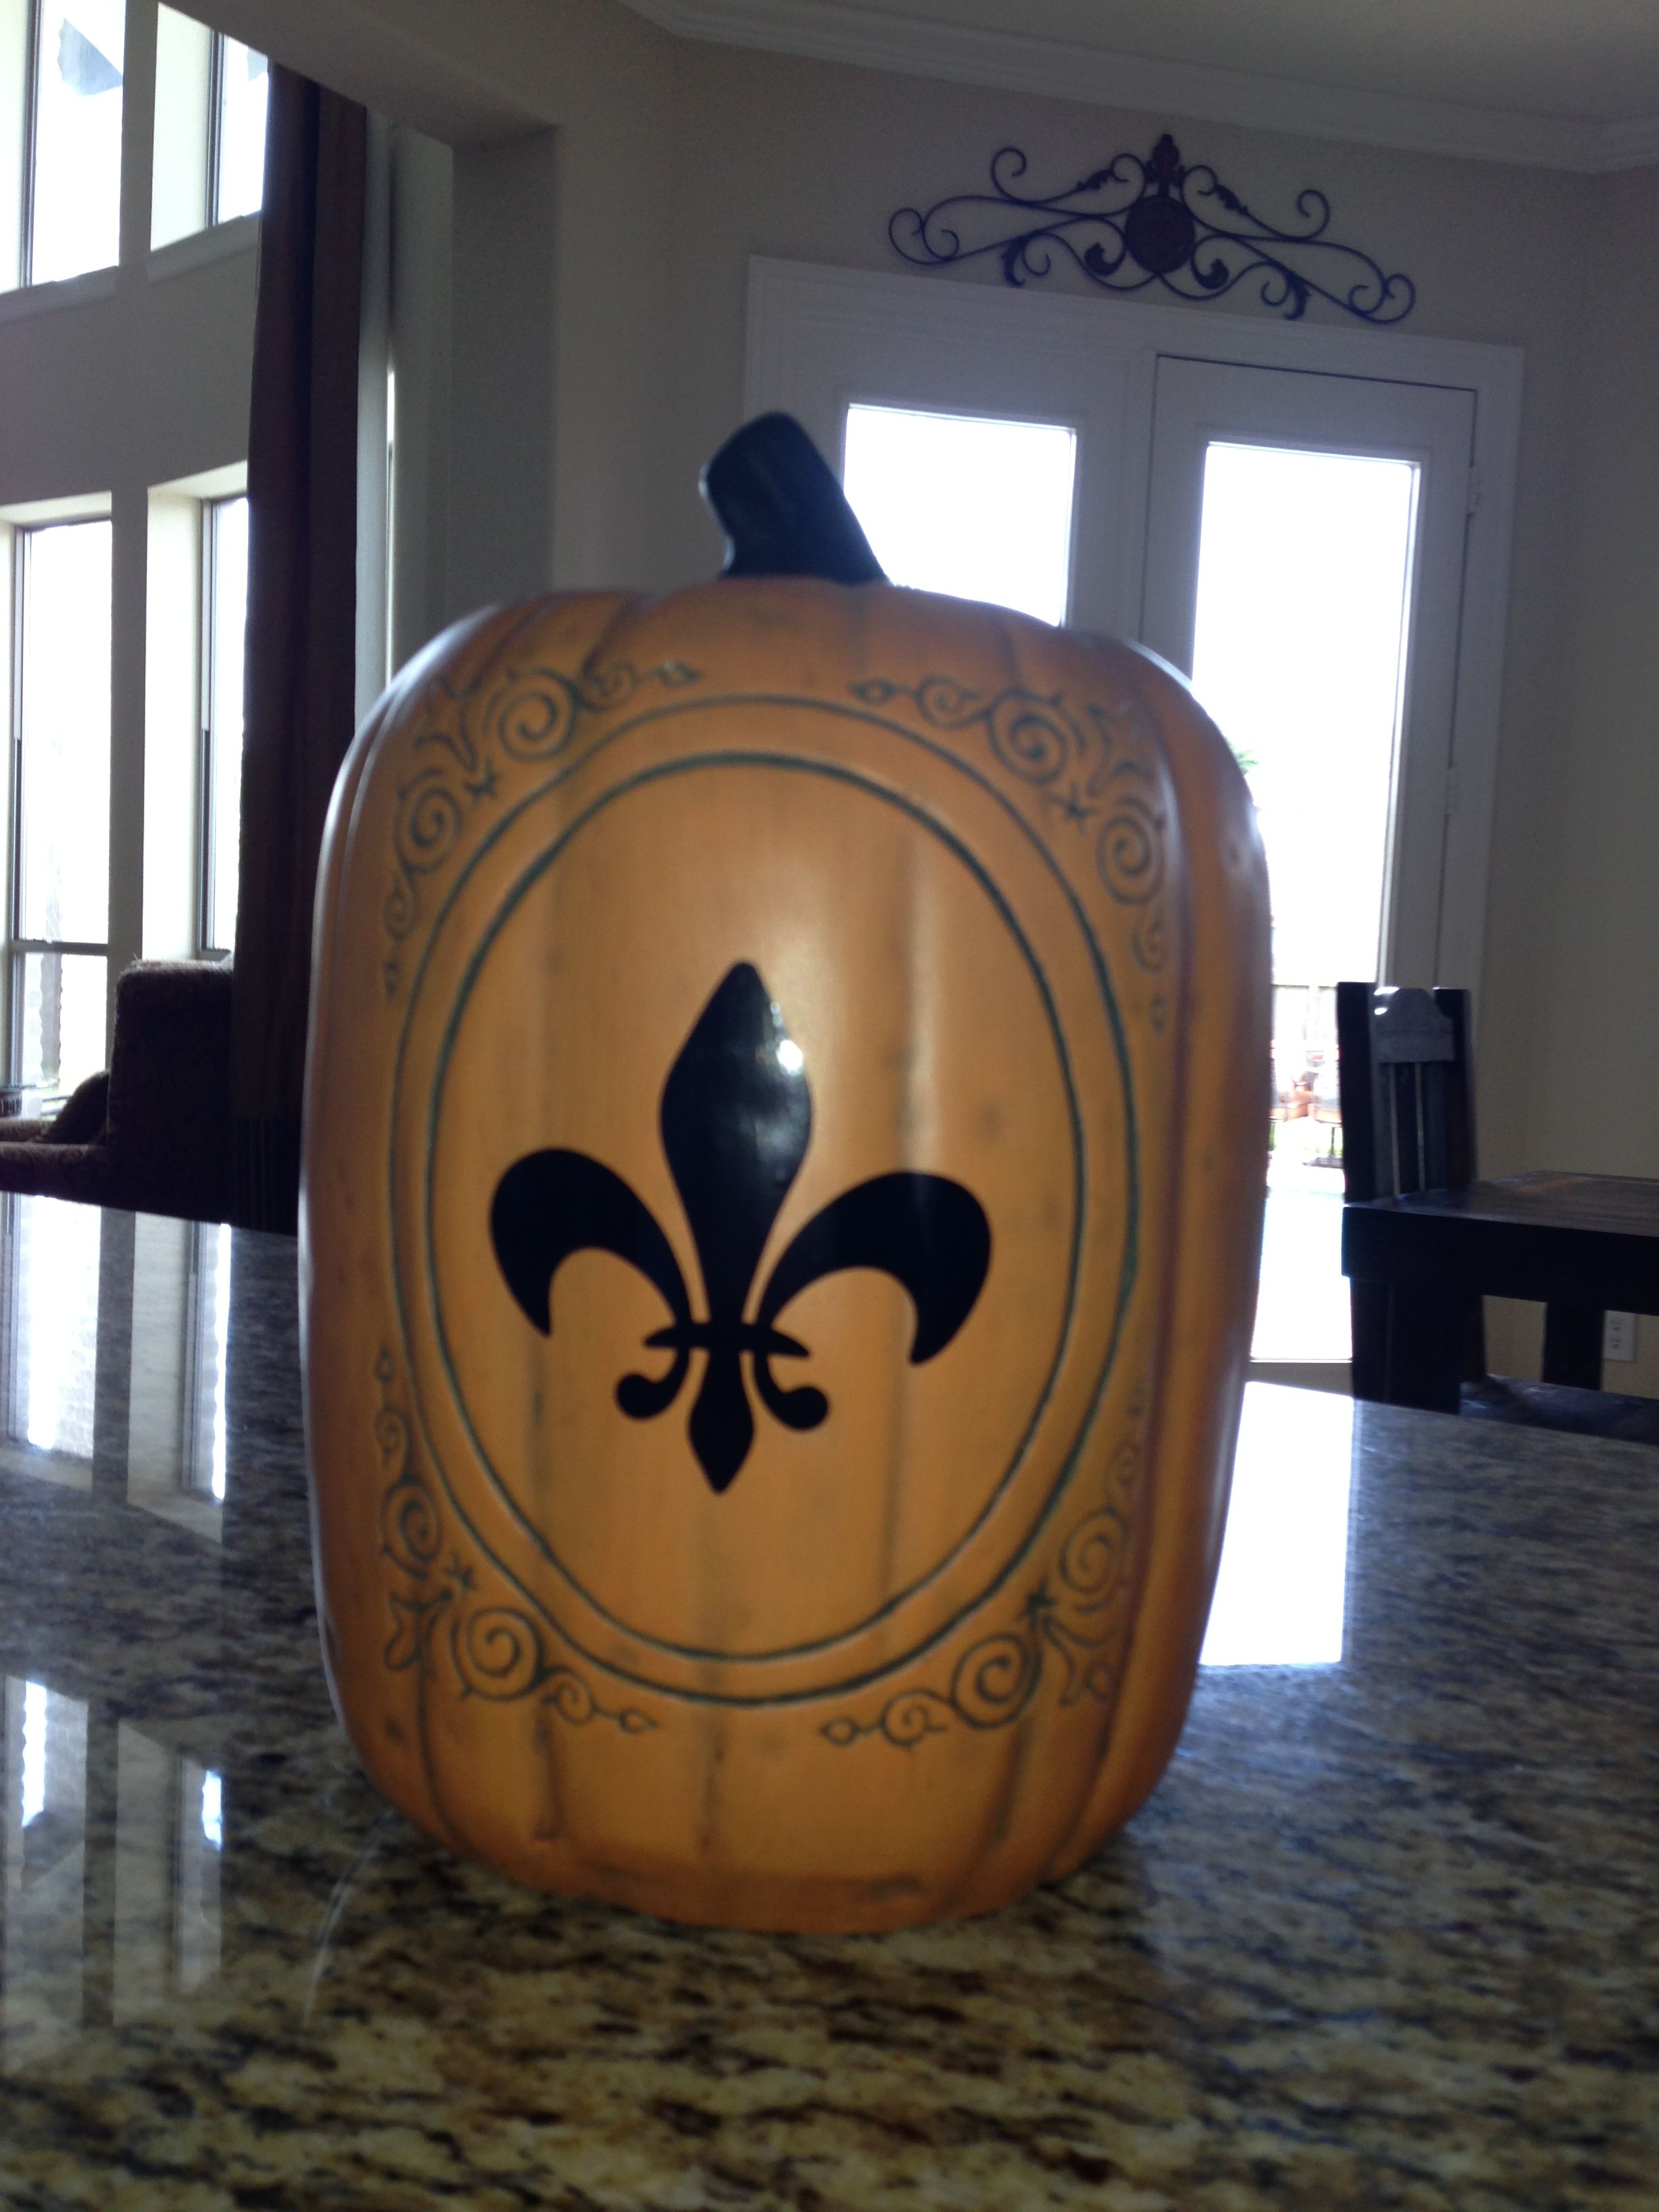 Hobby Lobby Ceramic Pumpkin With Vinyl Decal Fall Pinterest - Vinyl decals at hobby lobby